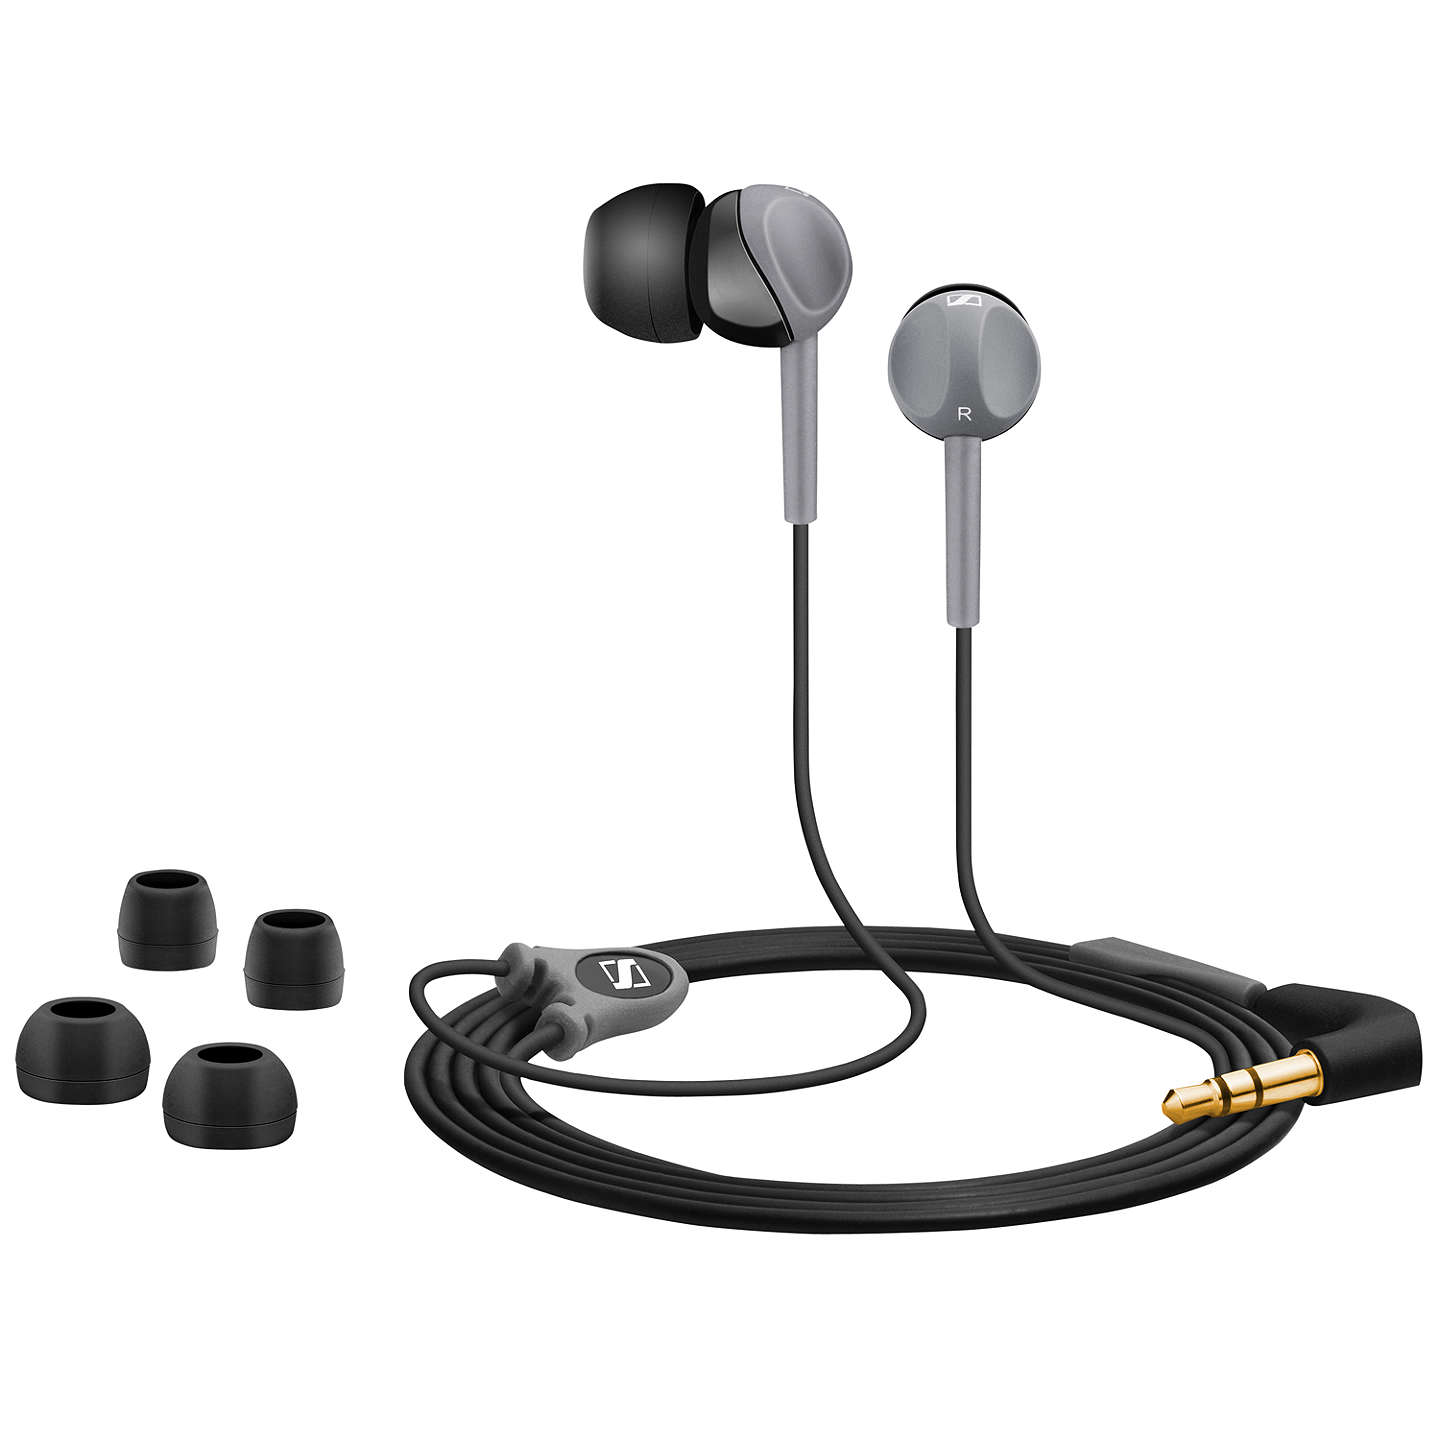 BuySennheiser CX160 In-Ear Headphones, Black Online at johnlewis.com